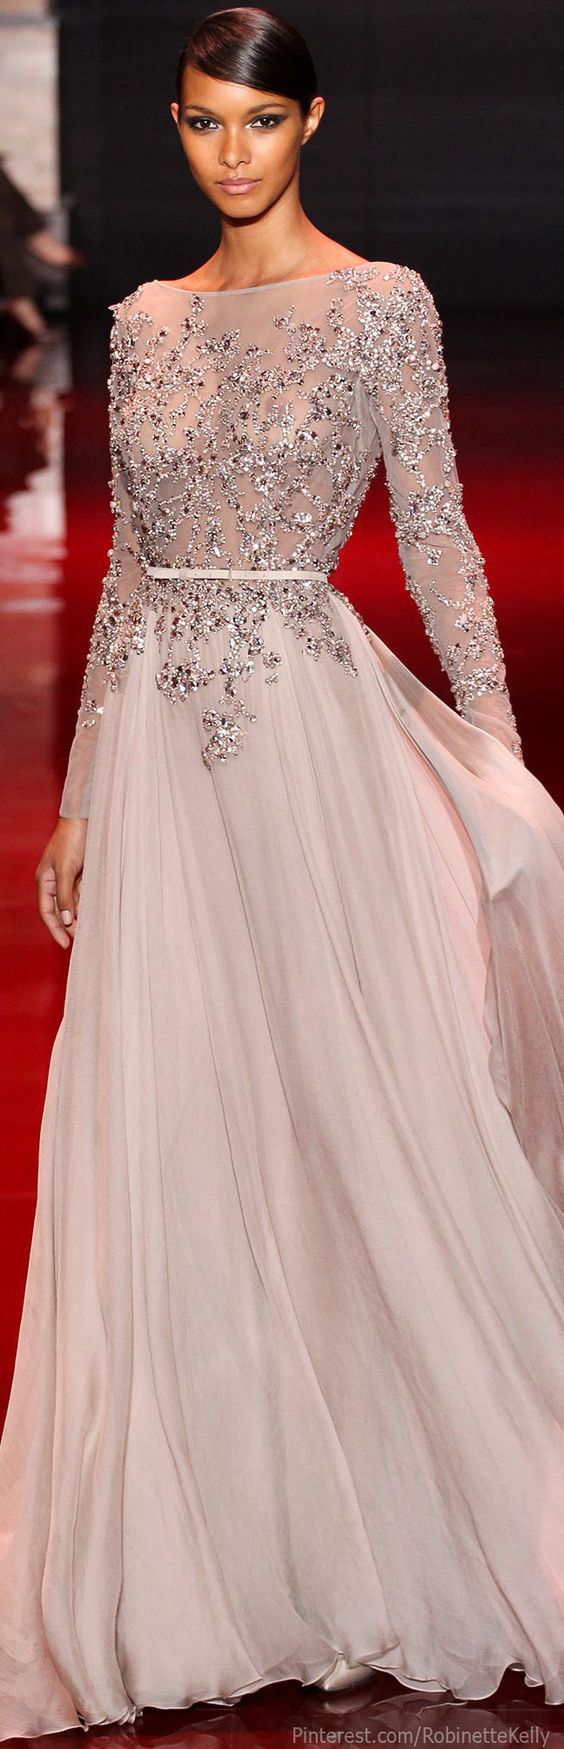 Elie Saab Haute Couture | F/W 2013 Love this dress (if I had a million dollars) #fashion #style #eloquence